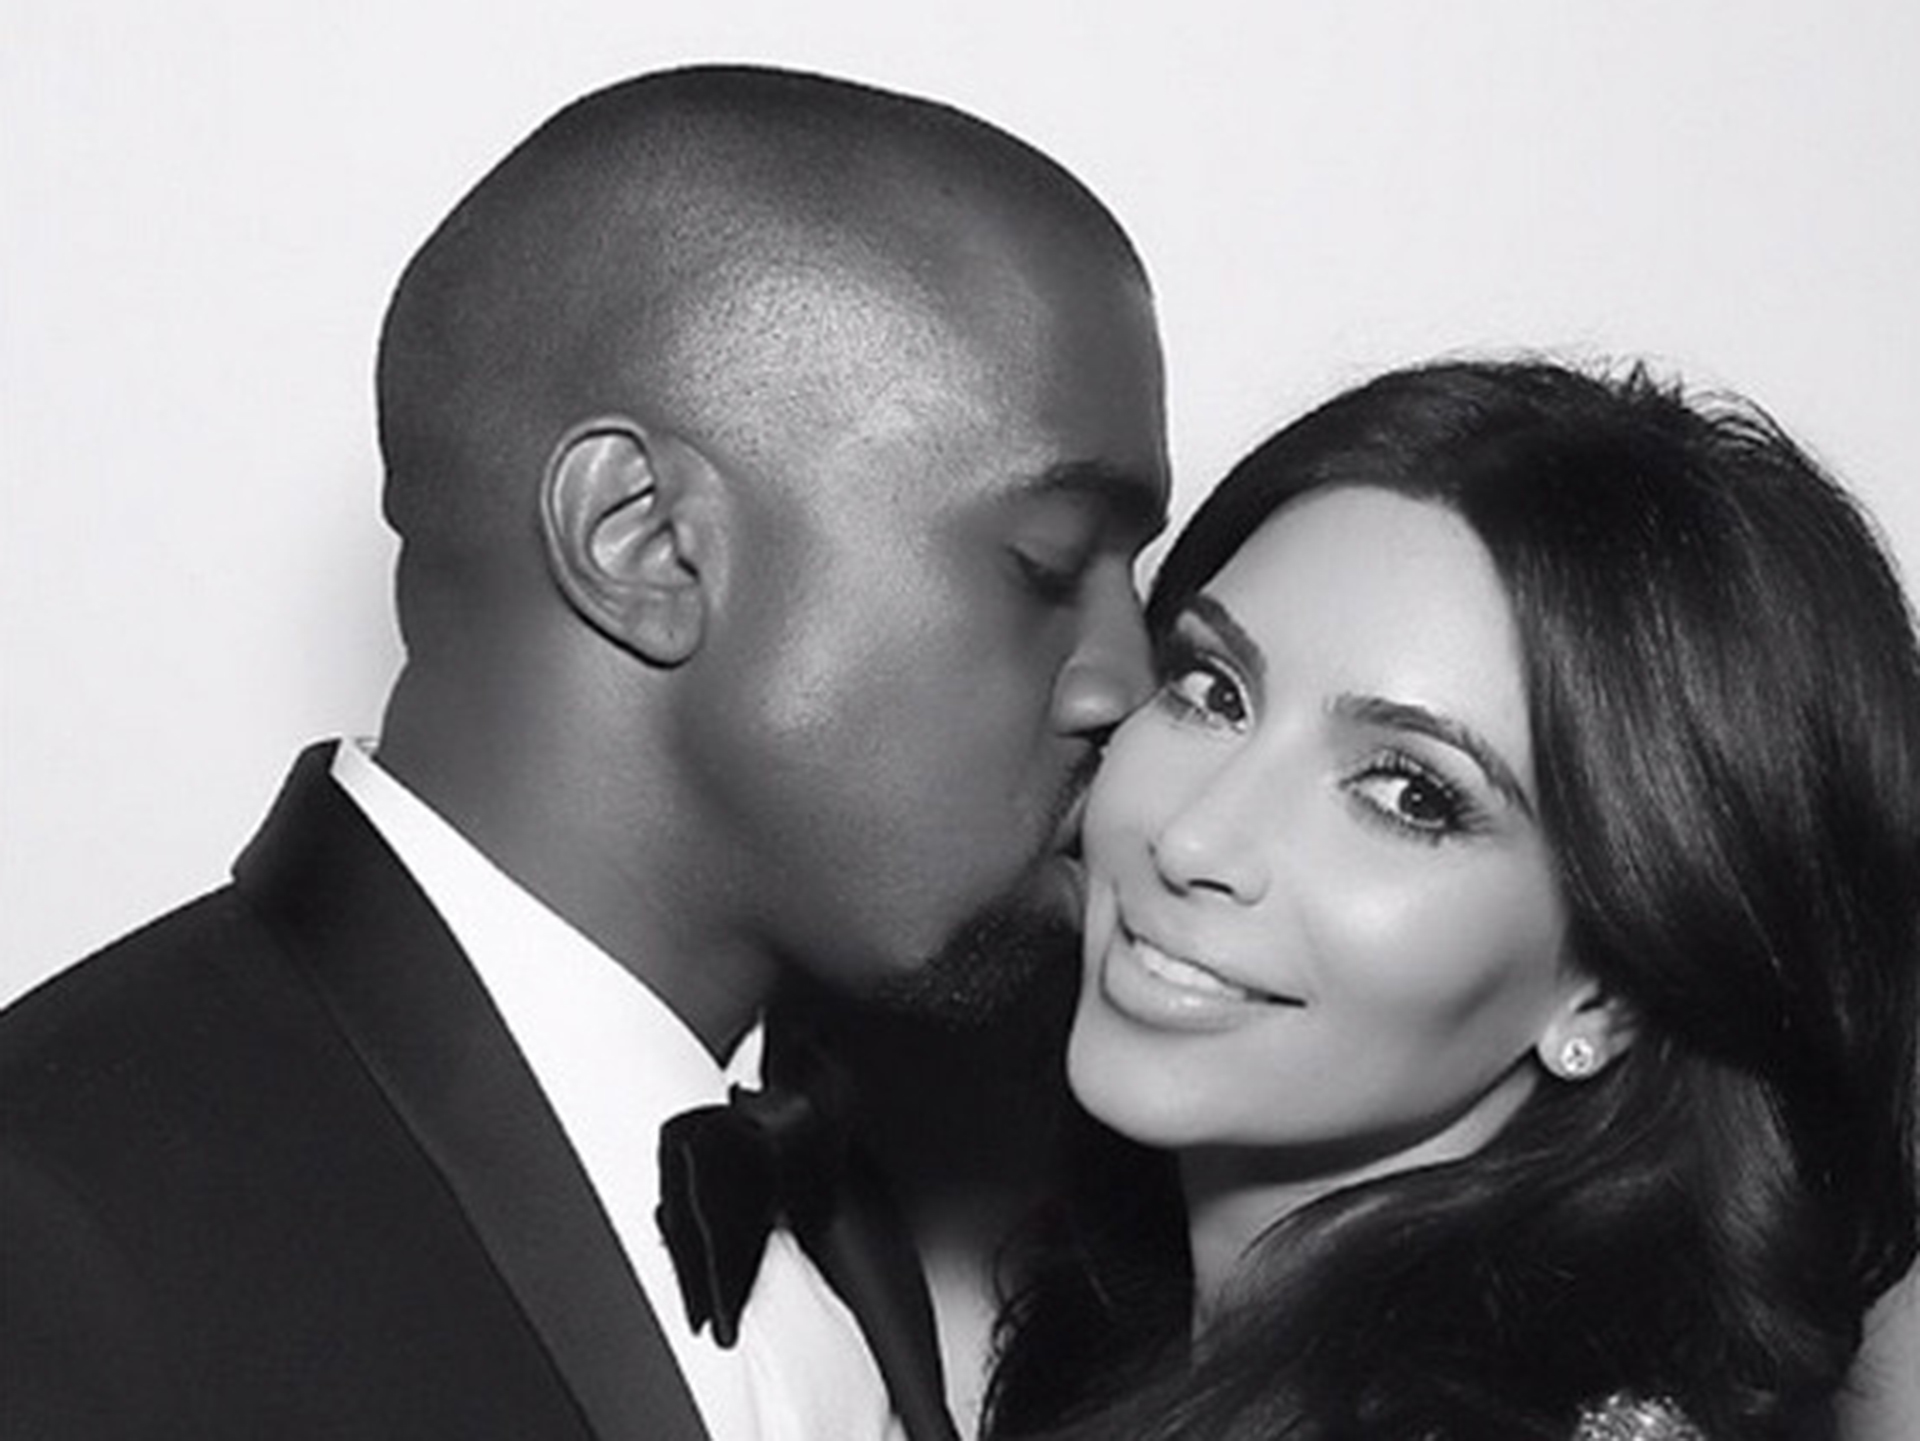 Kanye gifts Kim hundreds of thousands of dollars in stocks